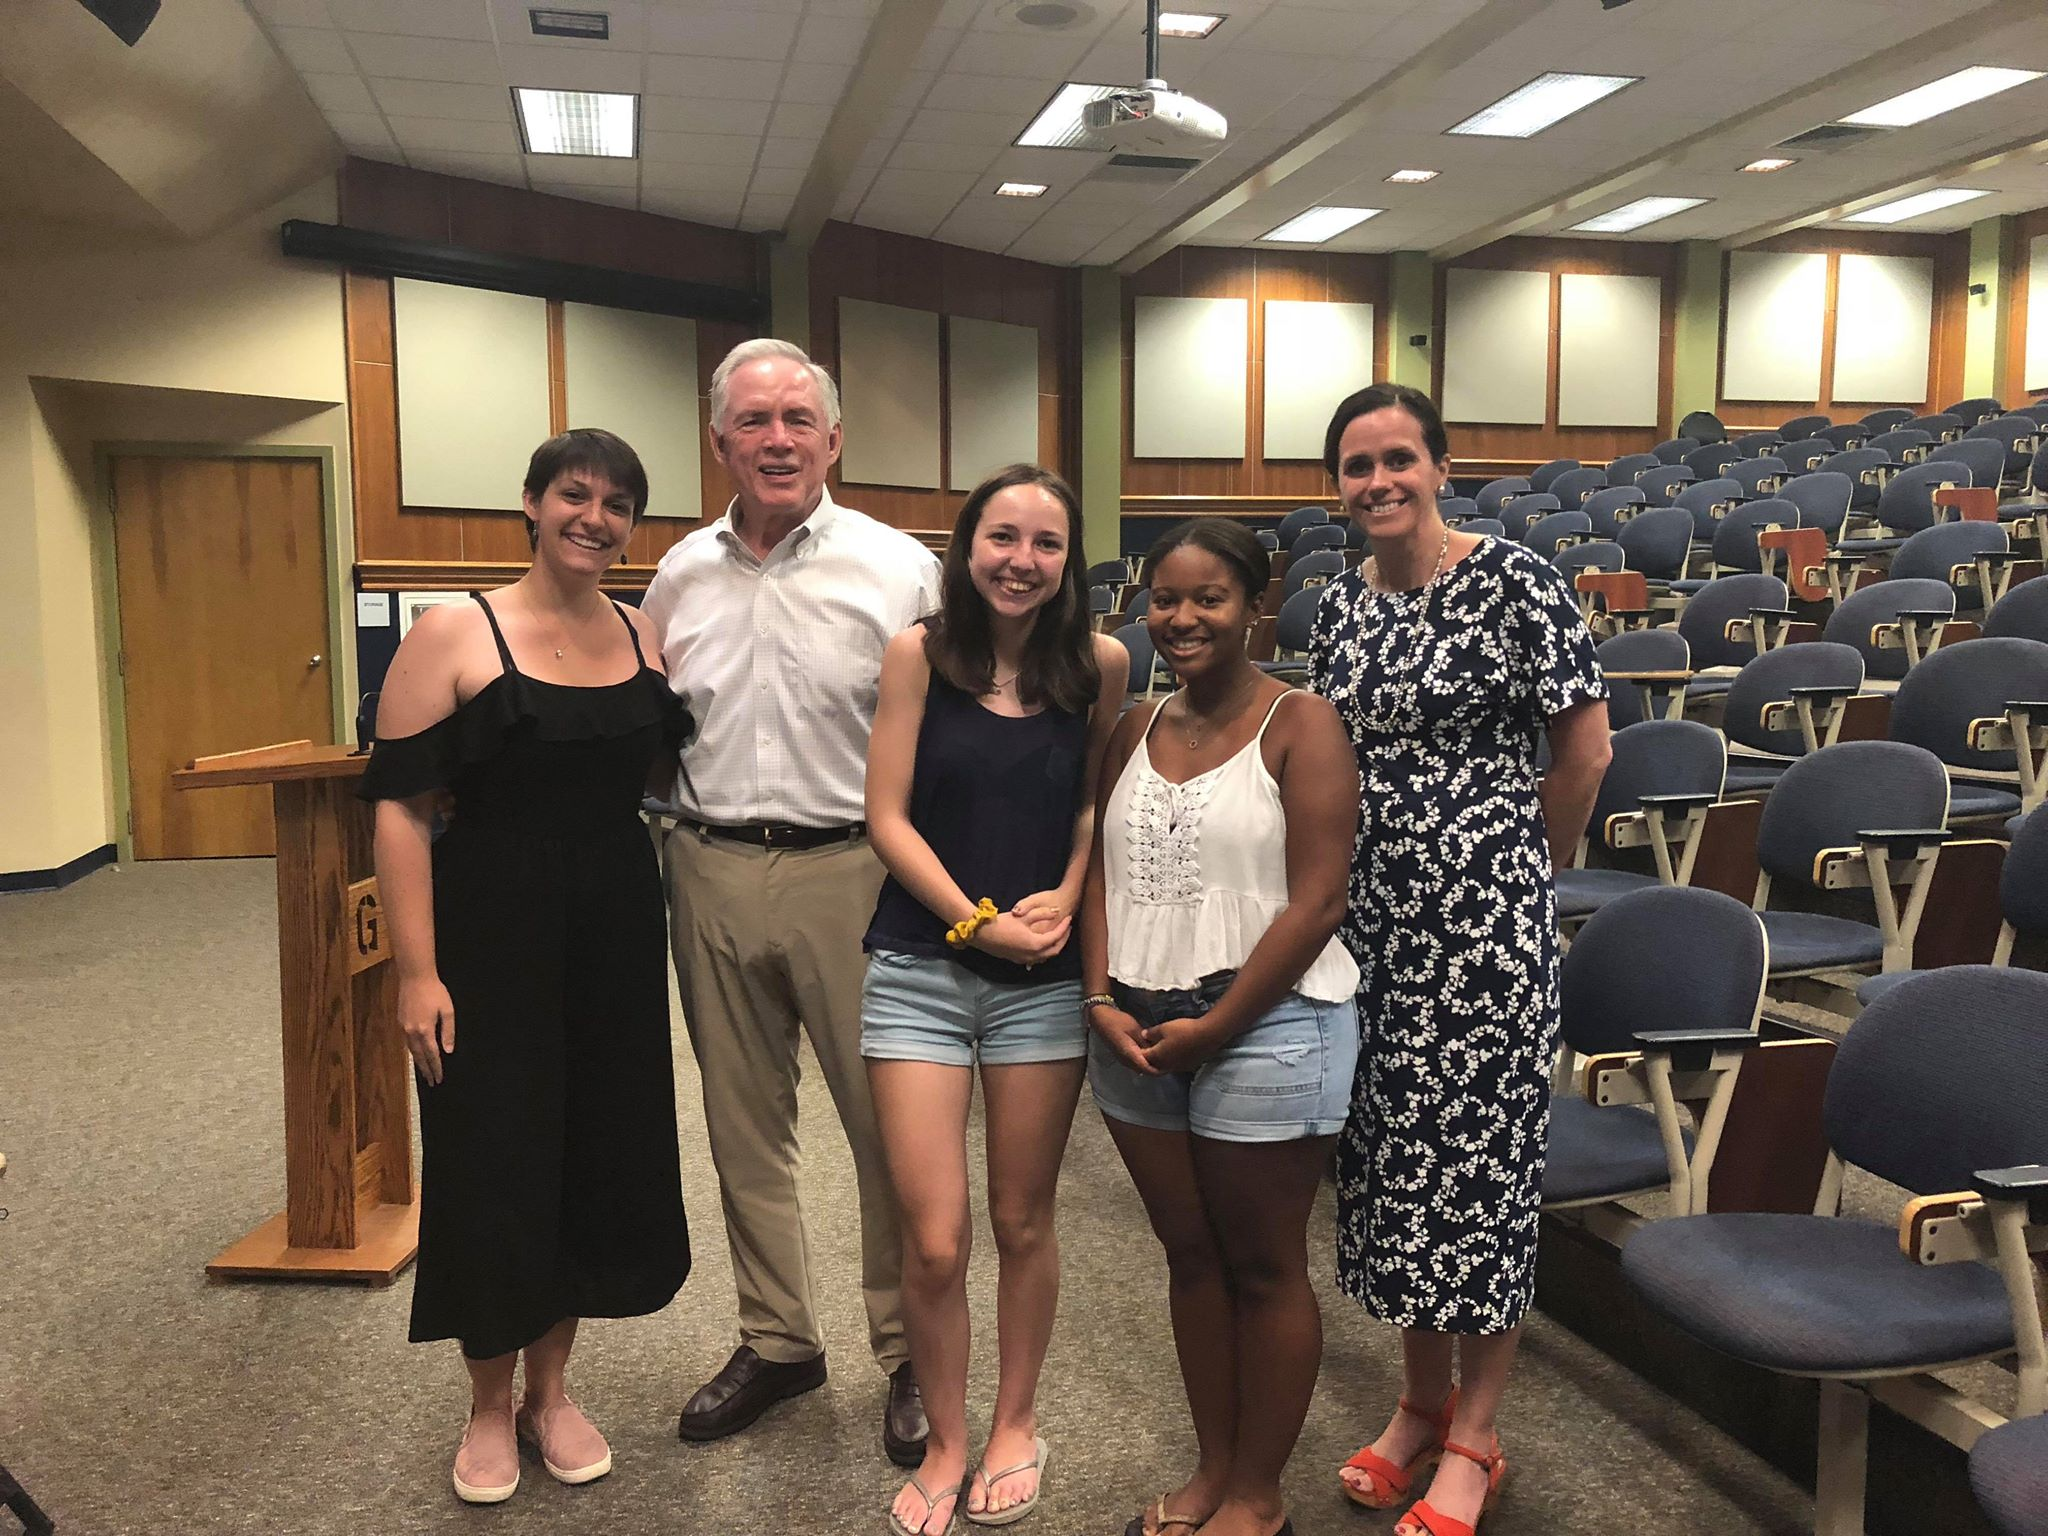 The President Search Committee's final open forum attendees from left to right: Sarah Tokar '19, Charlie Scott '77, Molly O'Gara '22, Maliyah Peacock '22, and Jennifer Lucas (Photo Kaley Michael/The Getysburgian)